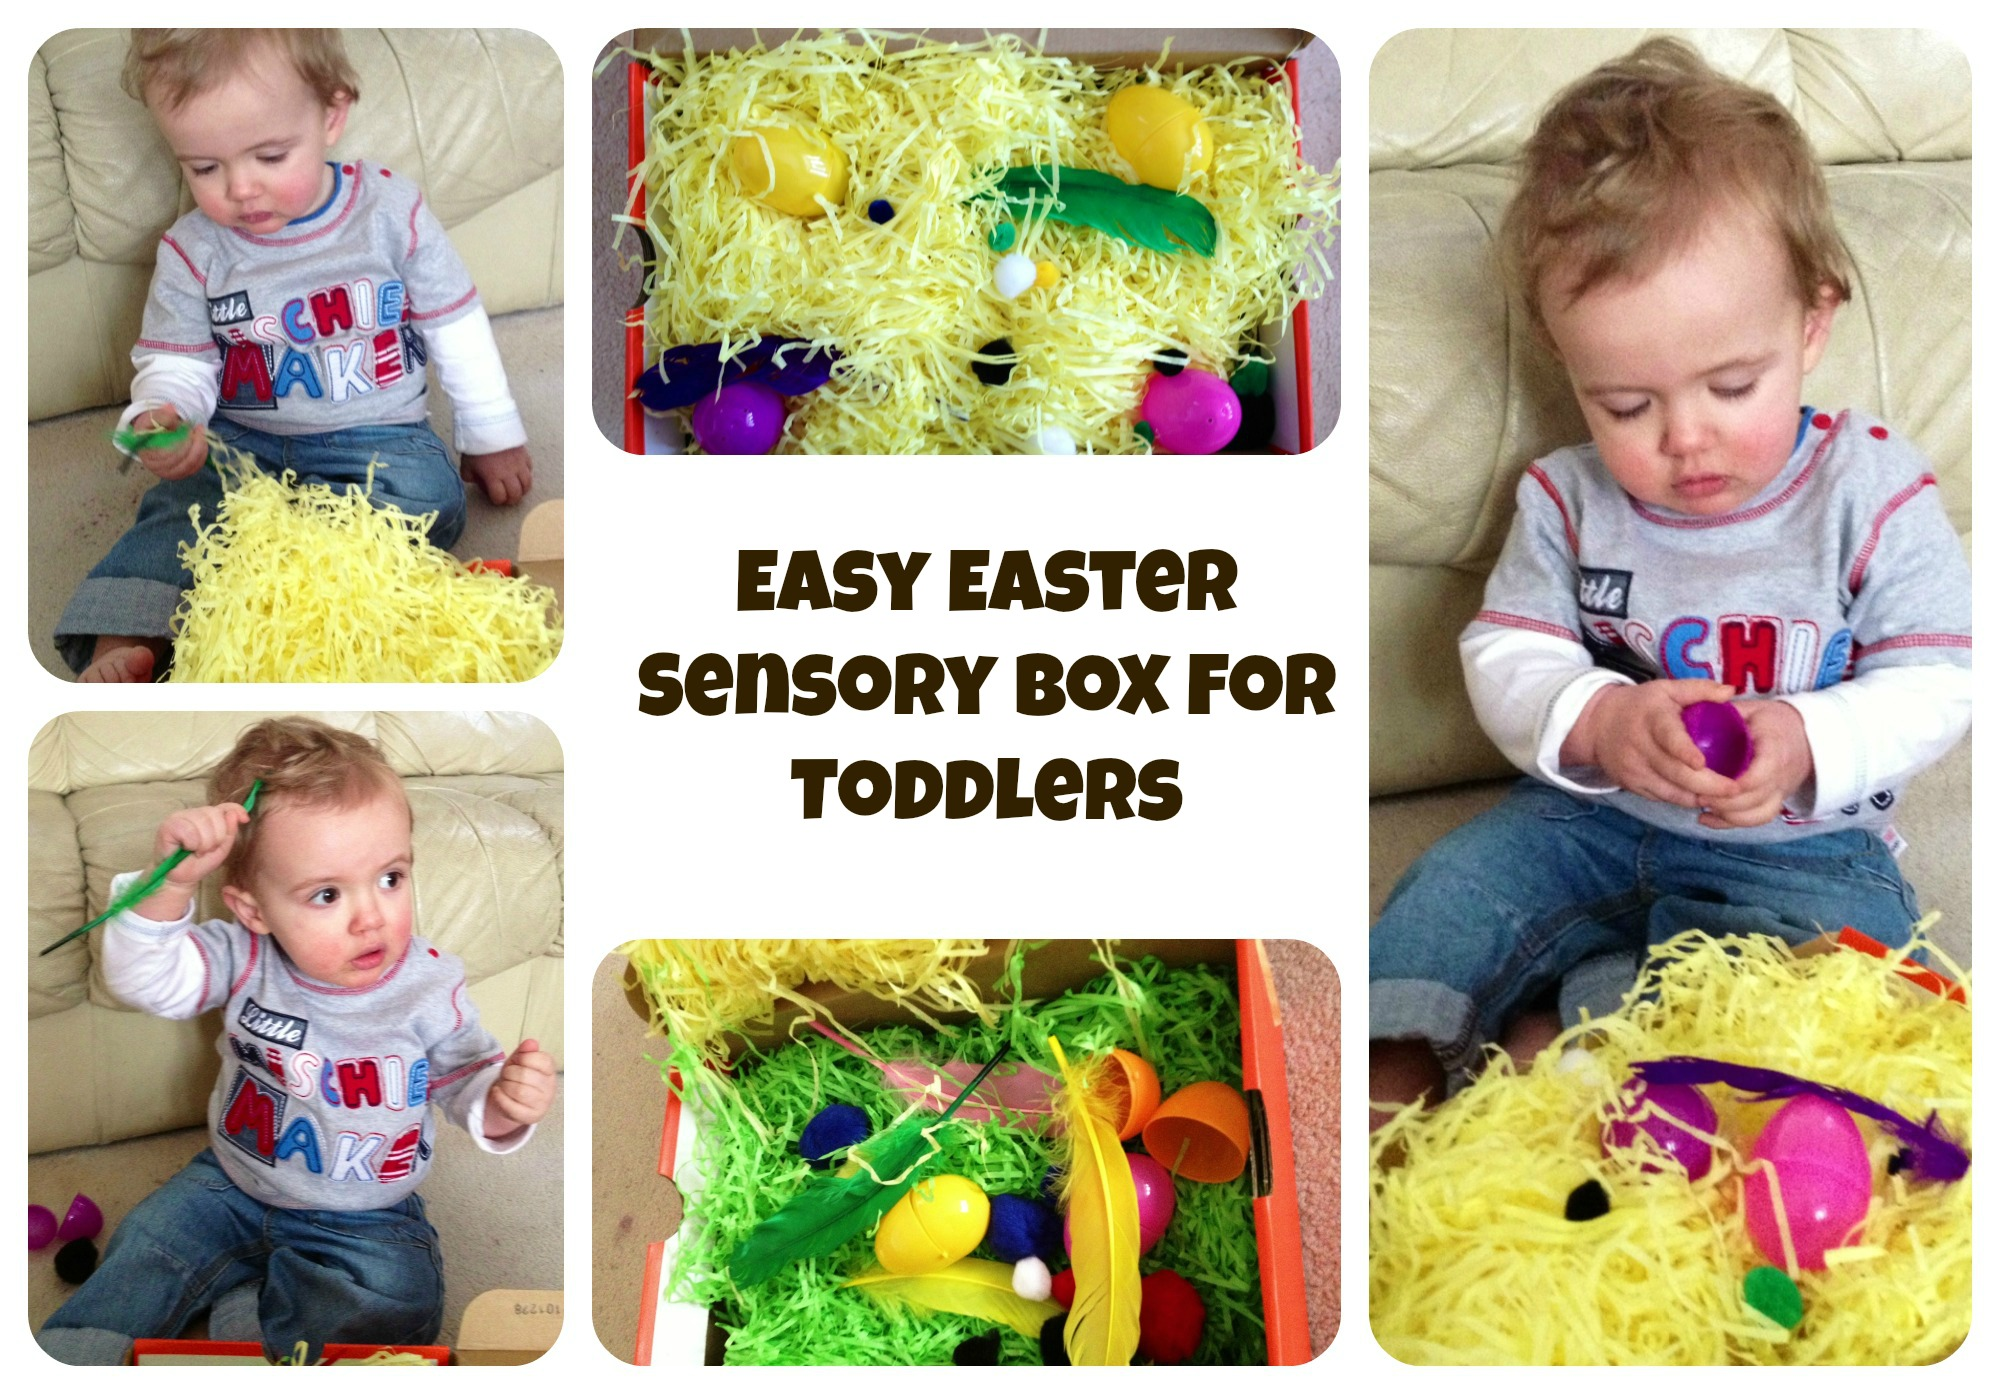 Easy Easter Sensory Box for Toddlers